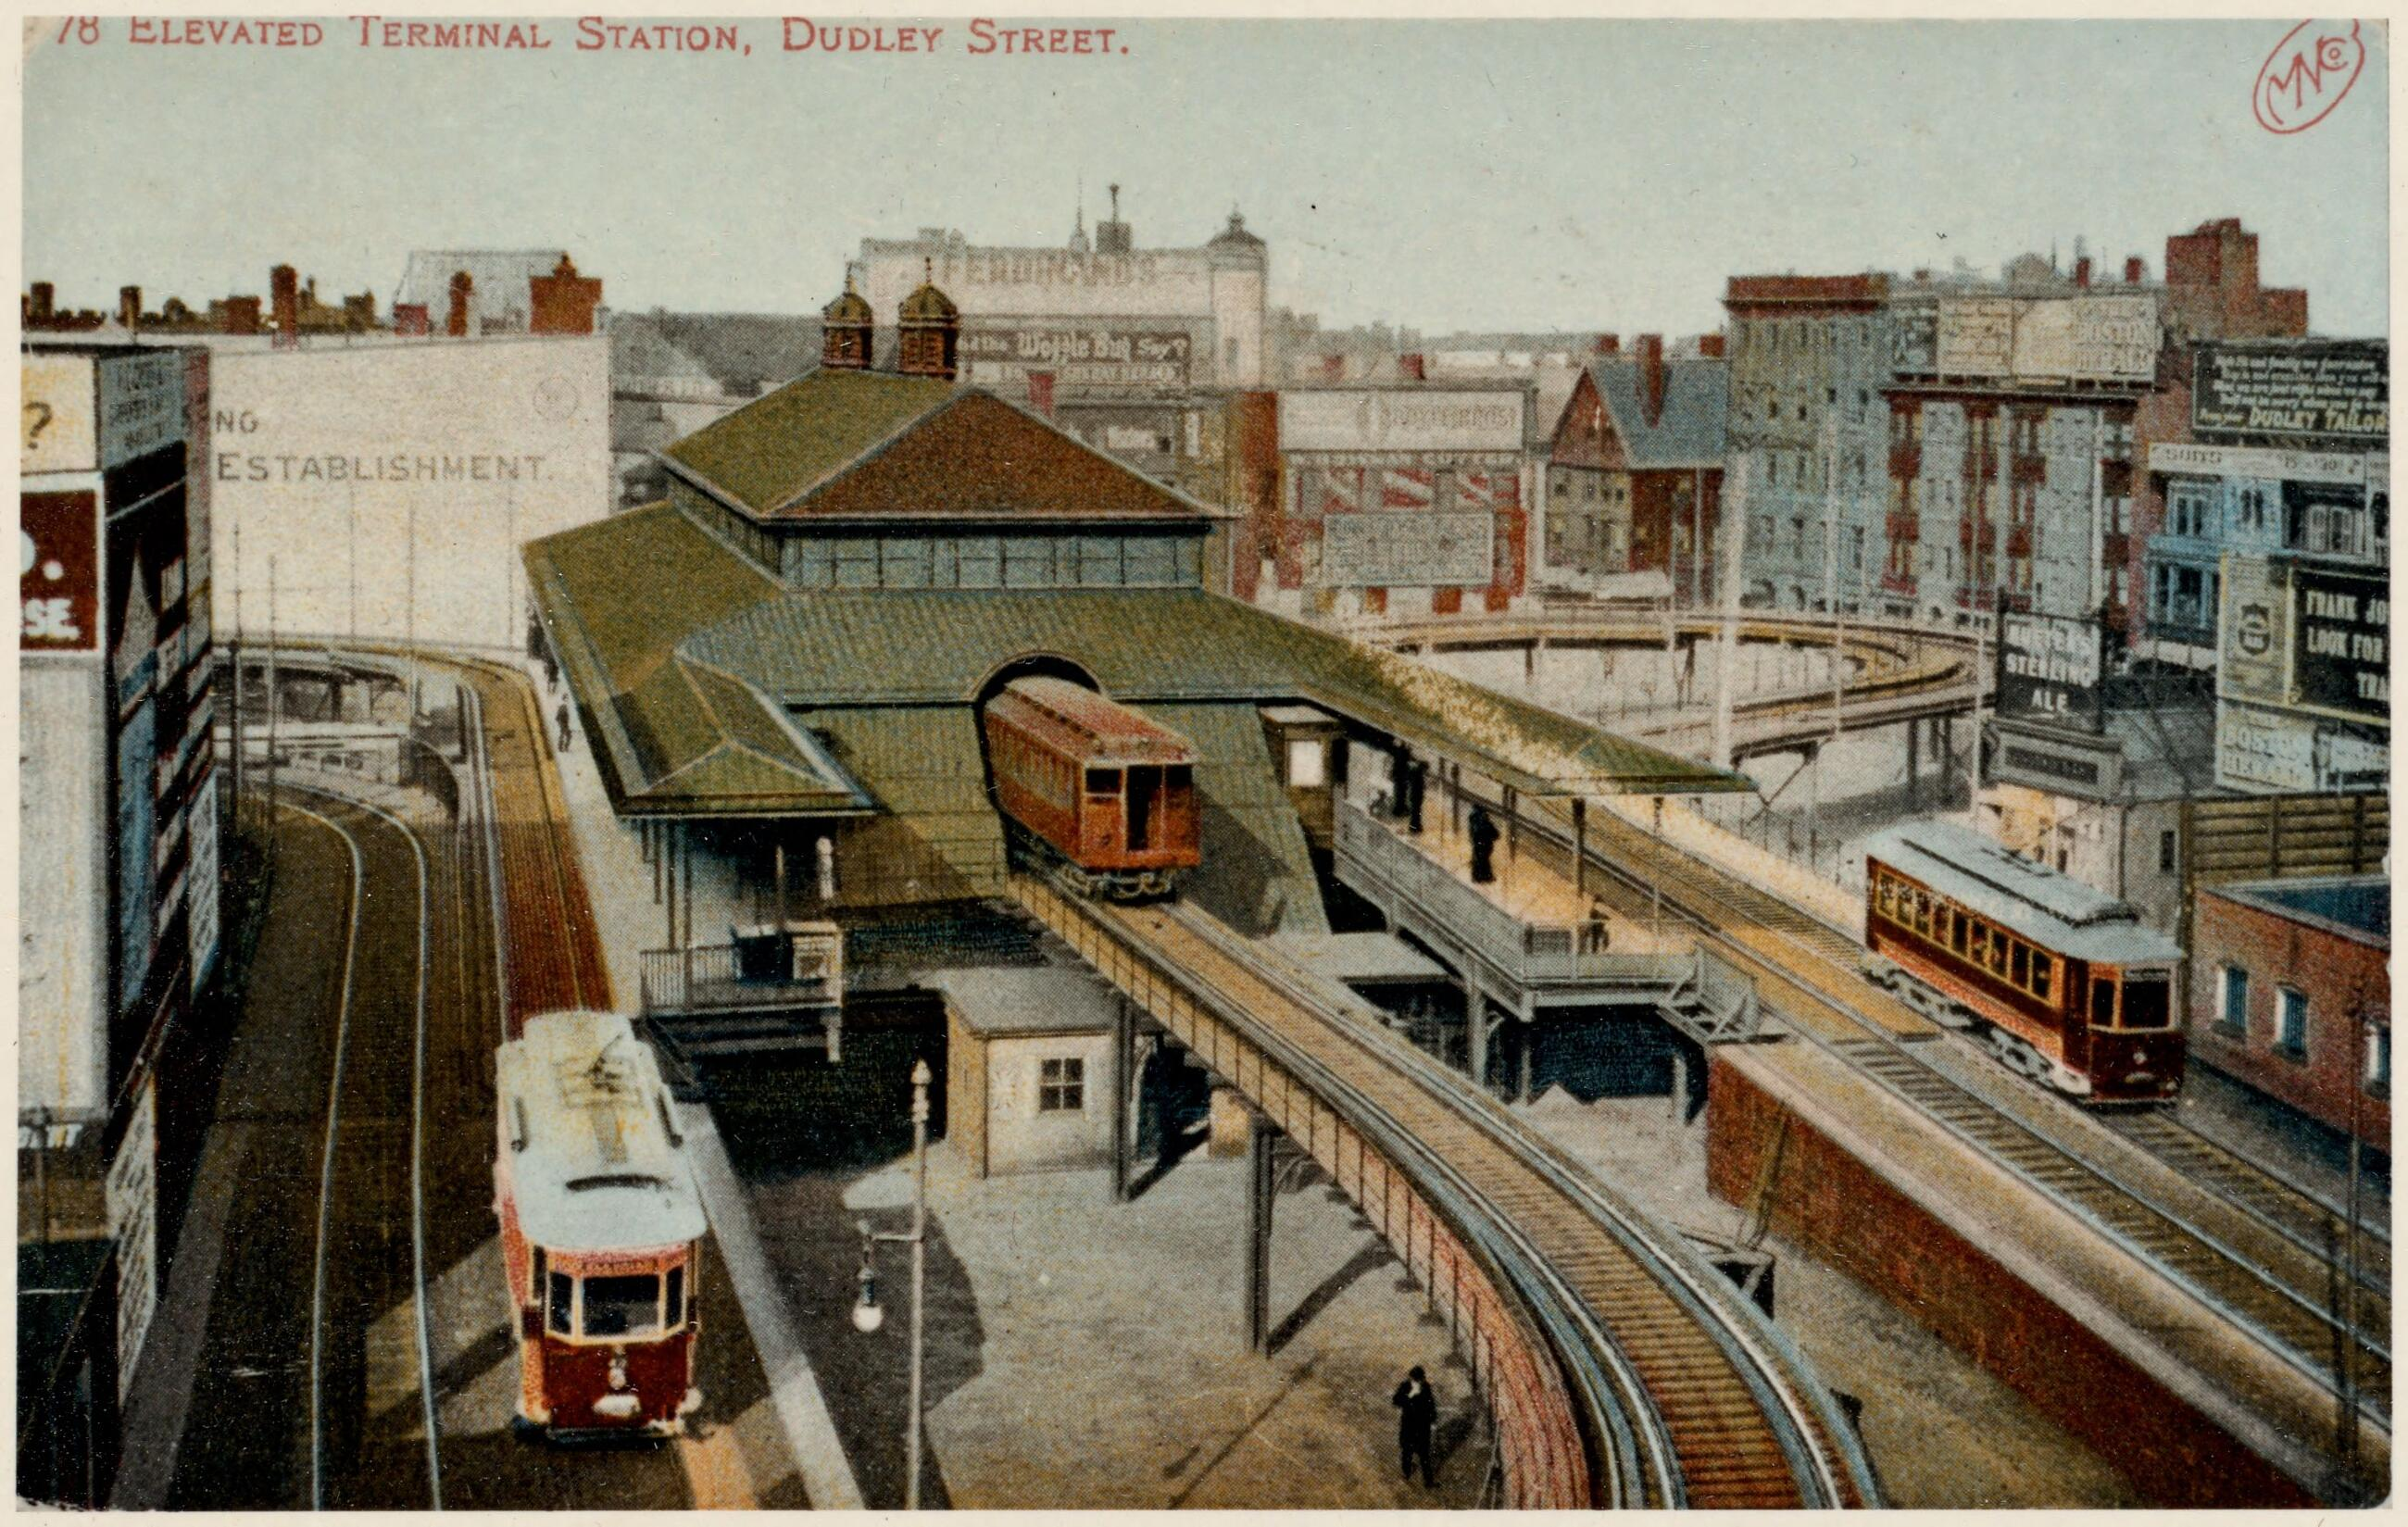 Elevated trains depart from Dudley Station.